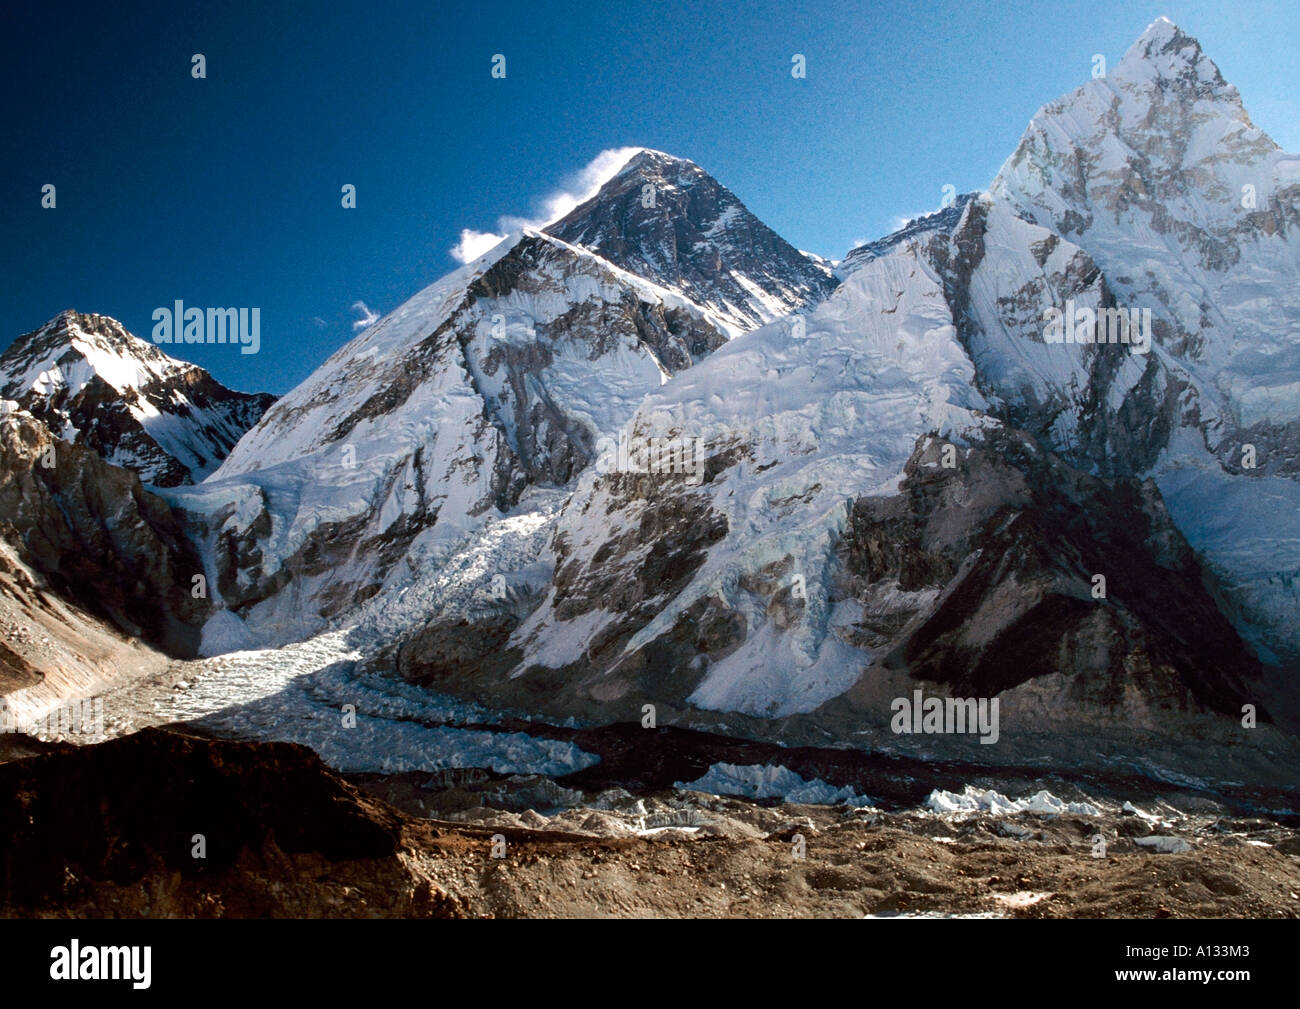 Mount Everest and Nuptse from Kalapatthar in Nepal - Stock Image